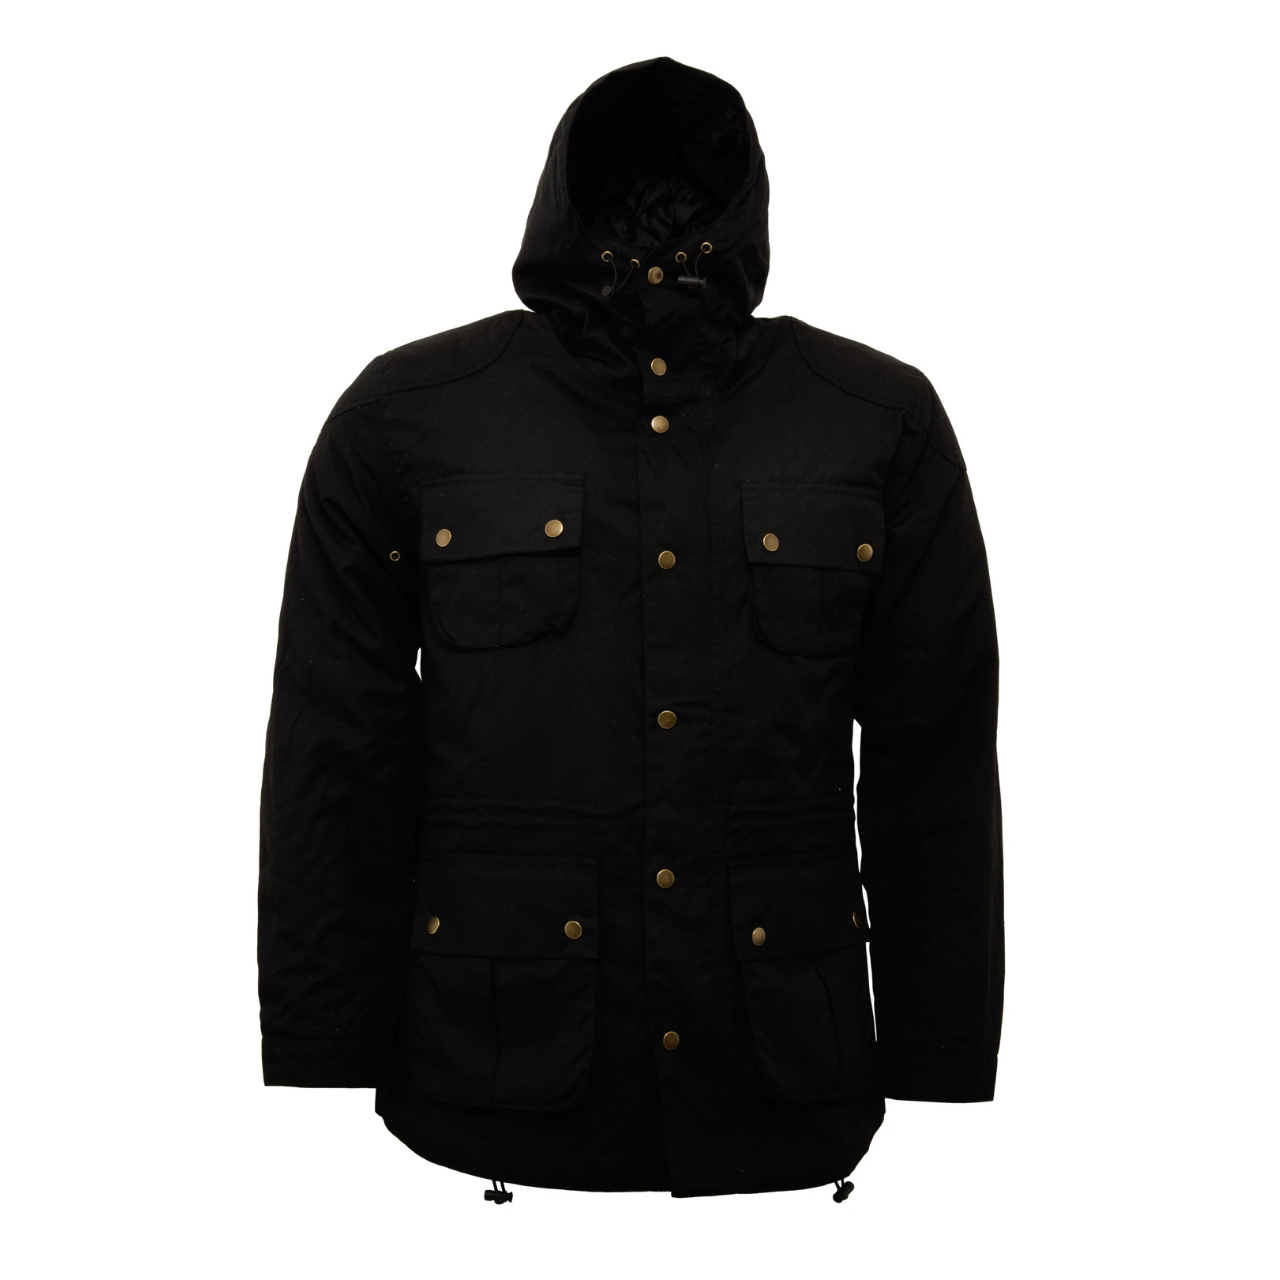 Relco London | Relco Storm Parka Jacket - Black